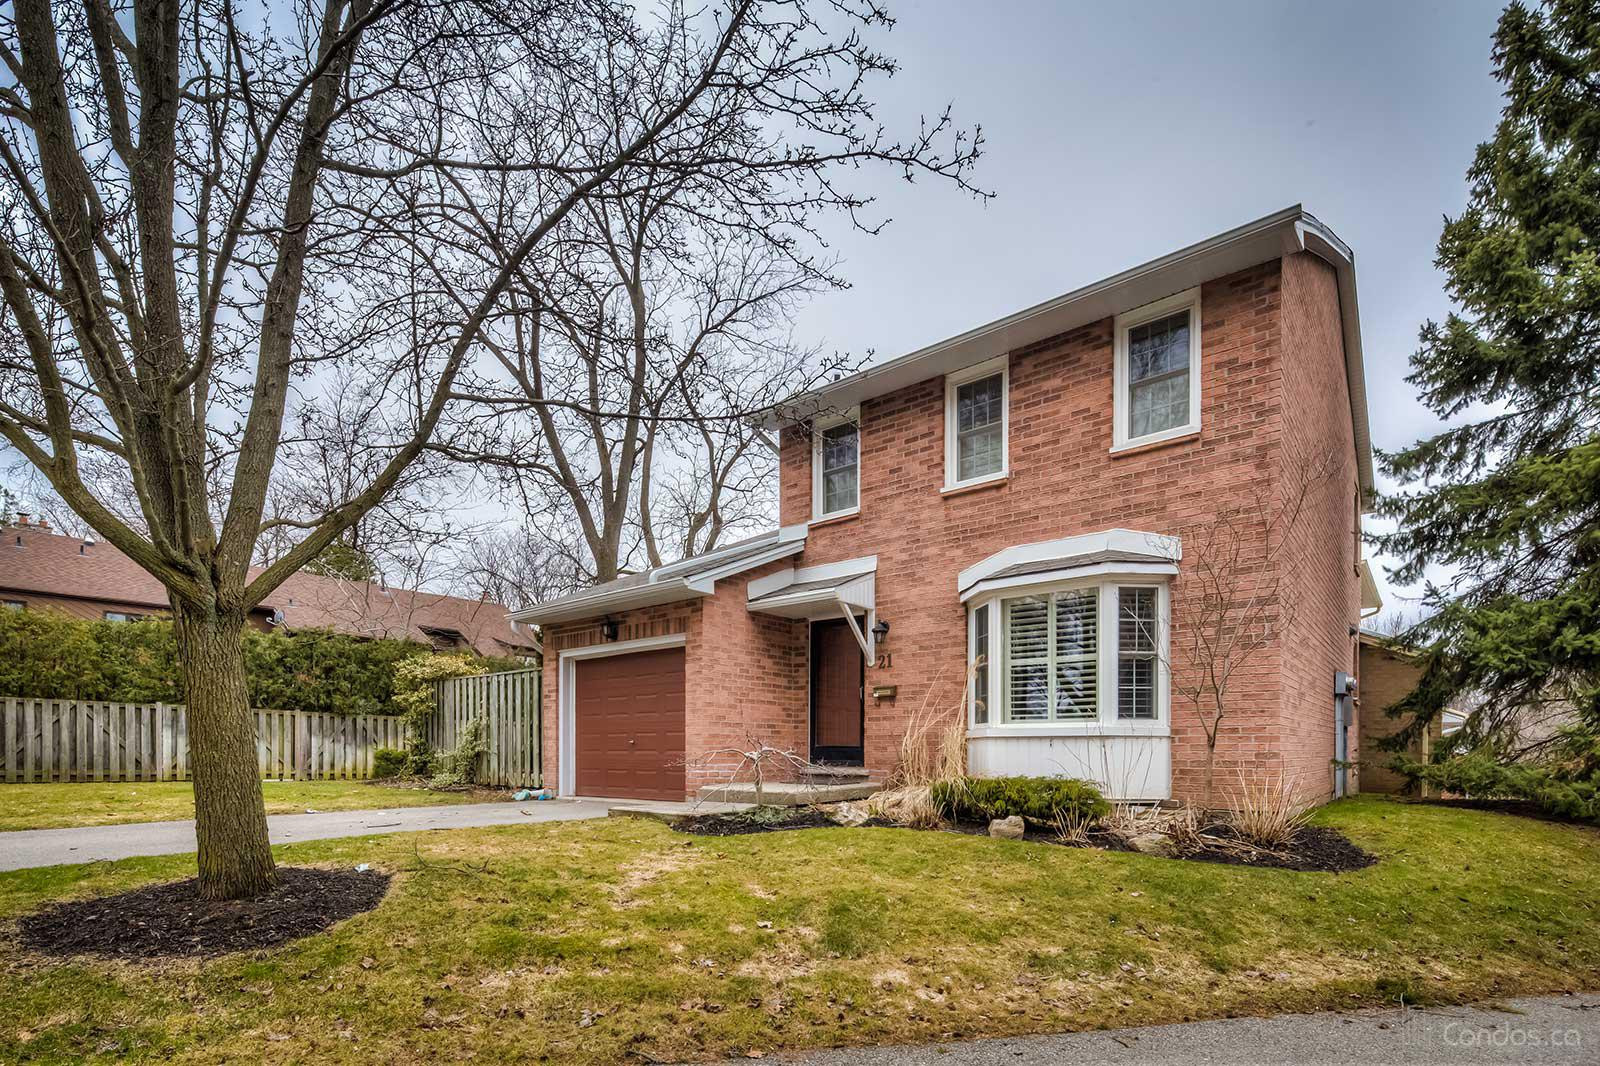 105 Wilson Condos at 105 Wilson St W, Ancaster 0